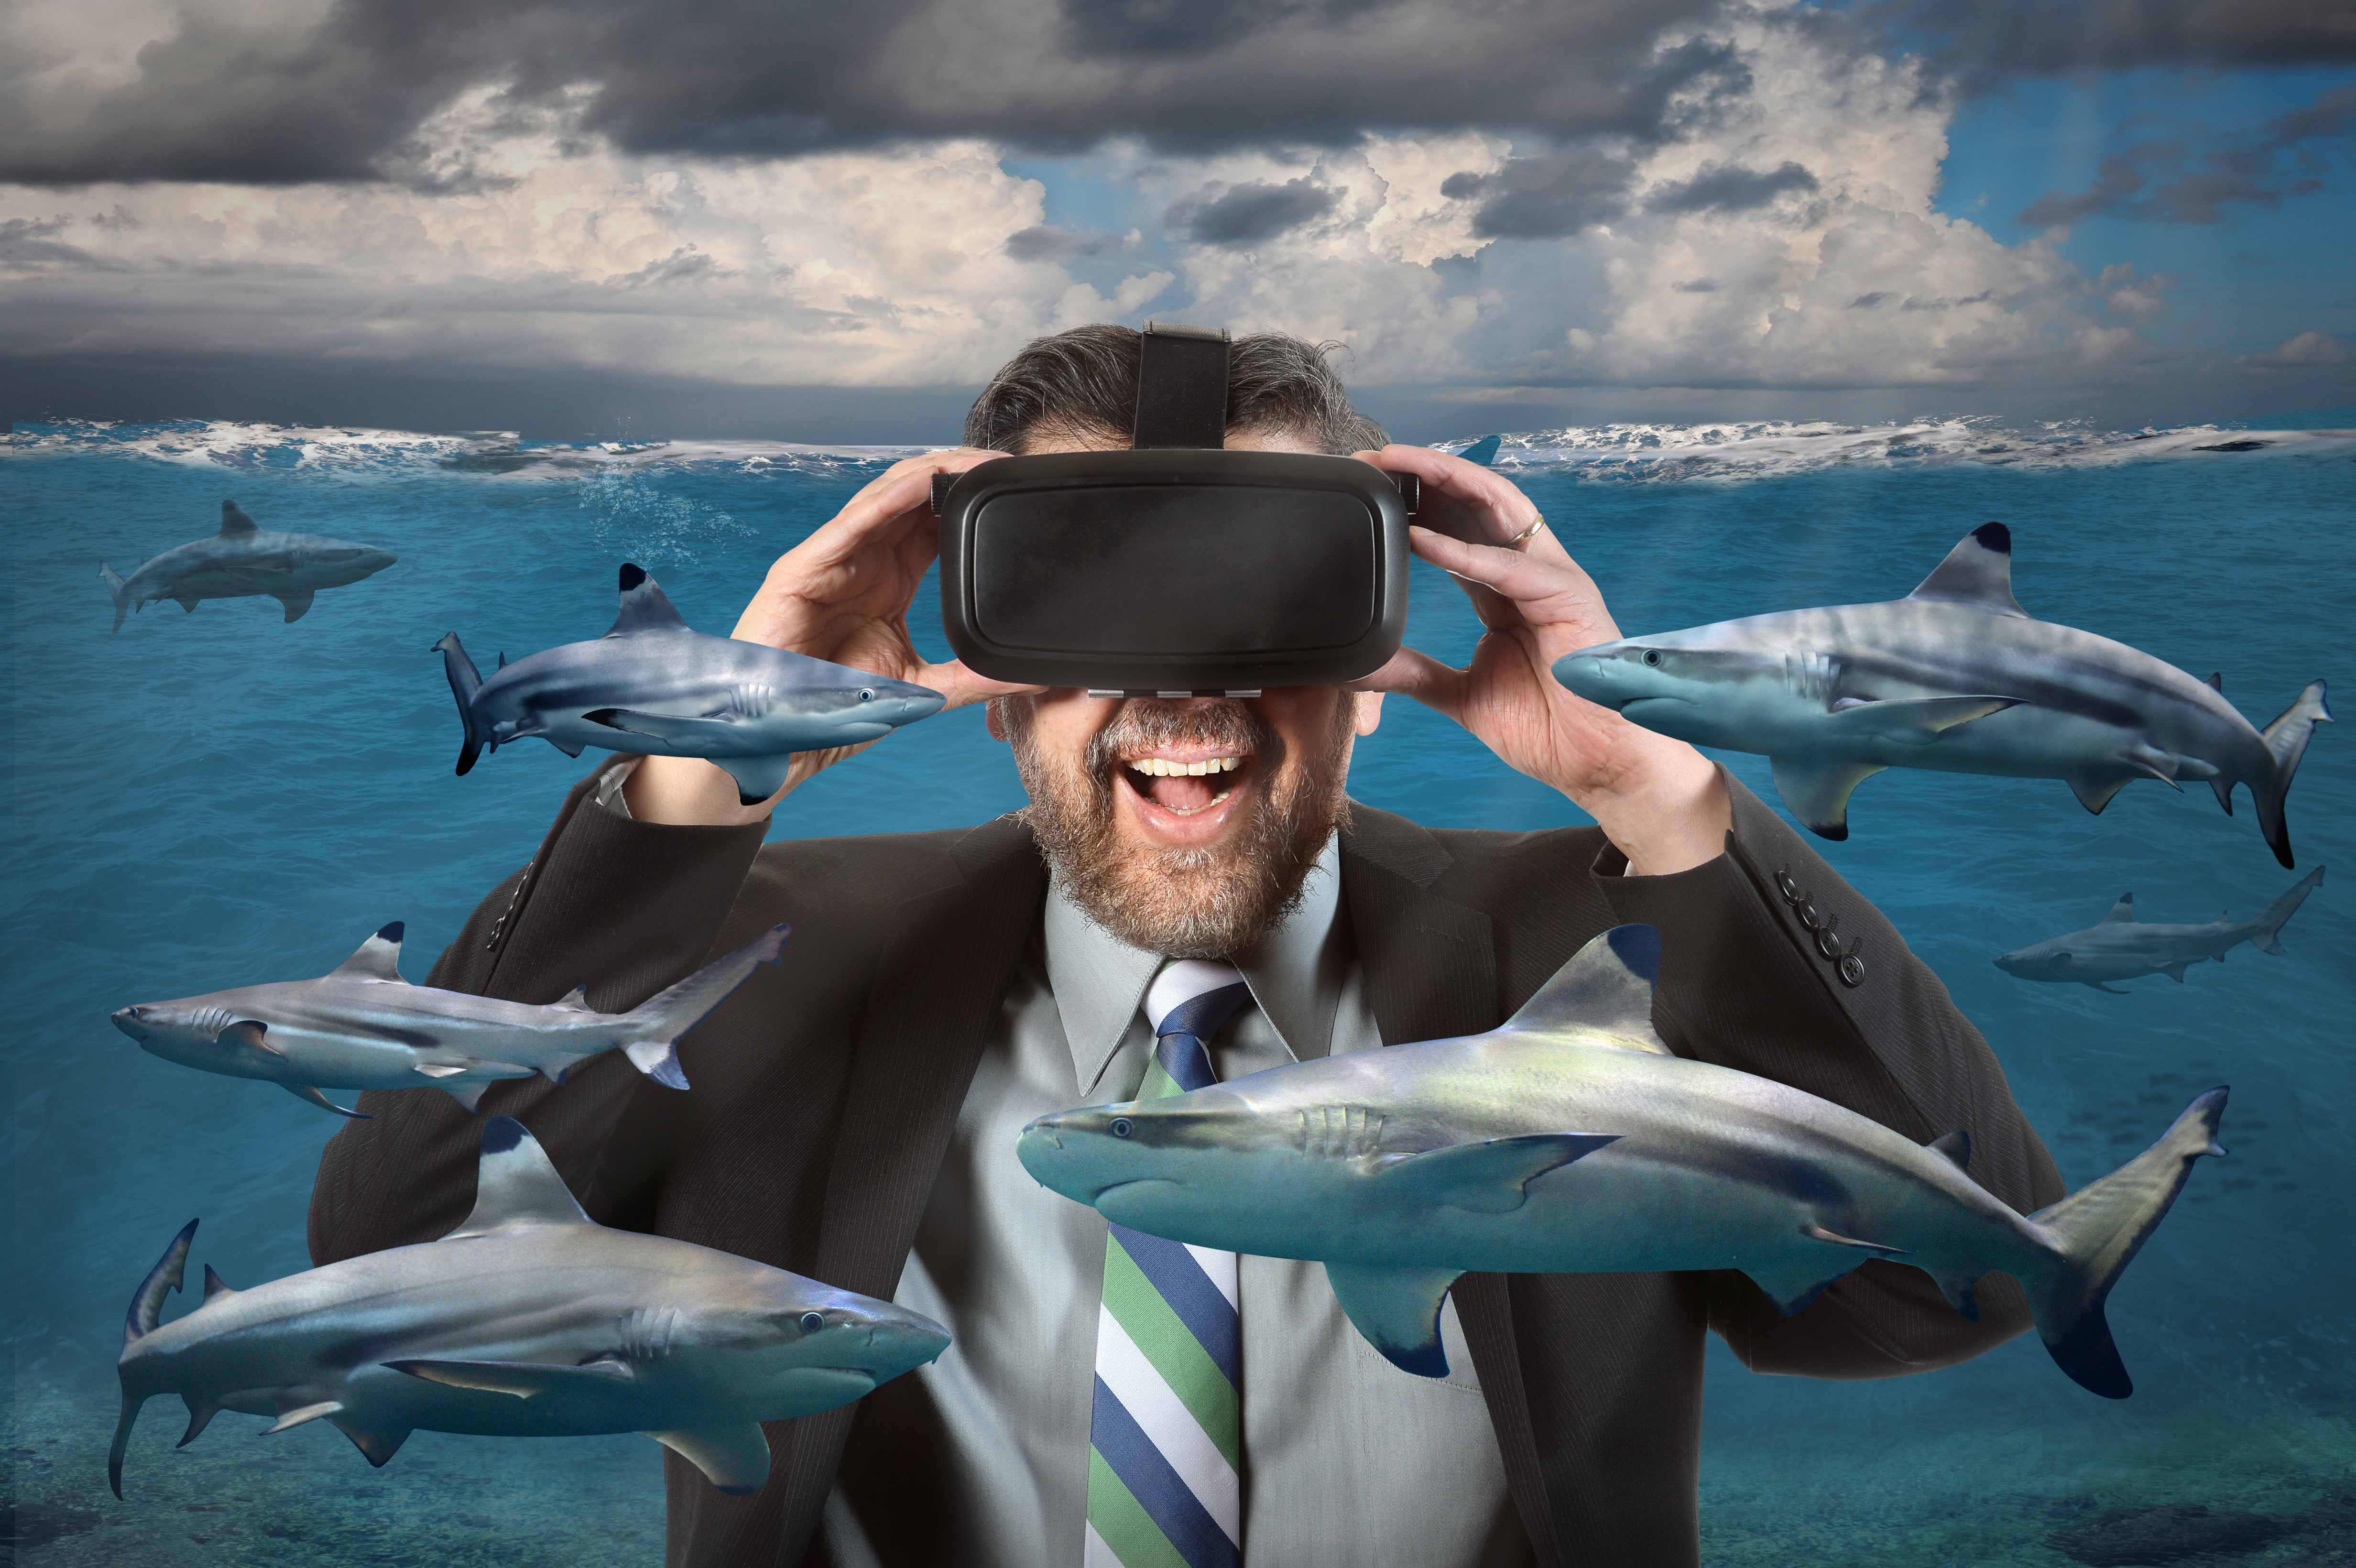 The evolution of virtual reality will create endless possibilities